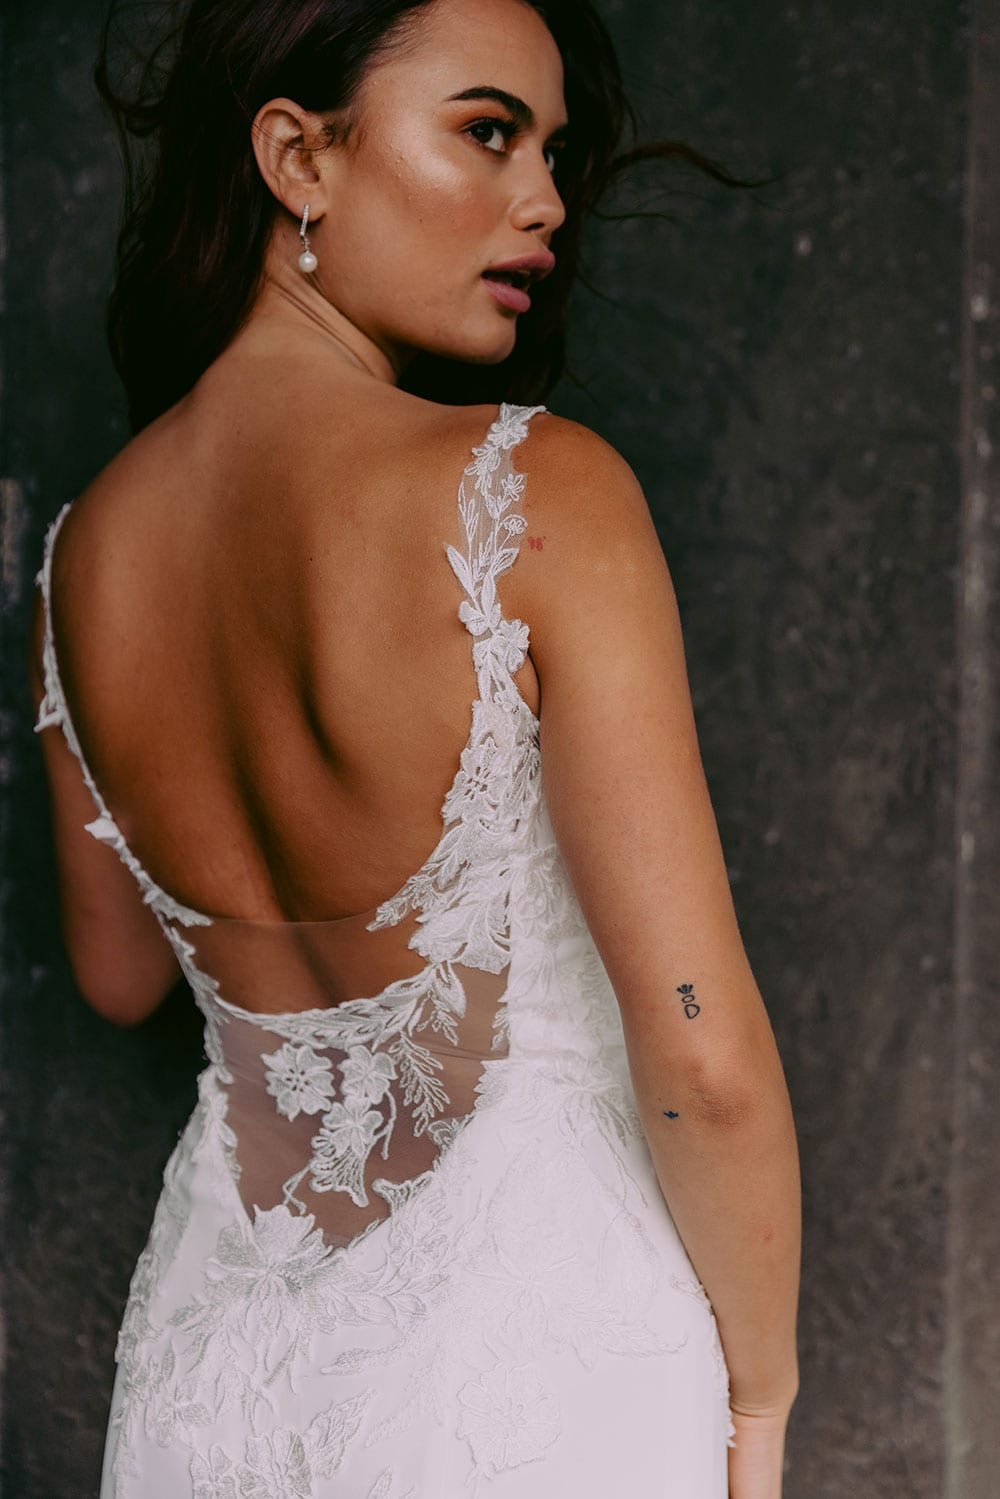 Ana Wedding gown from Vinka Design - This beautiful gown is graced by hand-appliqued delicate floral leaf lace, subtly worked into the front of the bodice and more prominently on the back. A fit-and-flare cut shapes the figure. Model wearing gown highlighting low back of dress with lace detail.